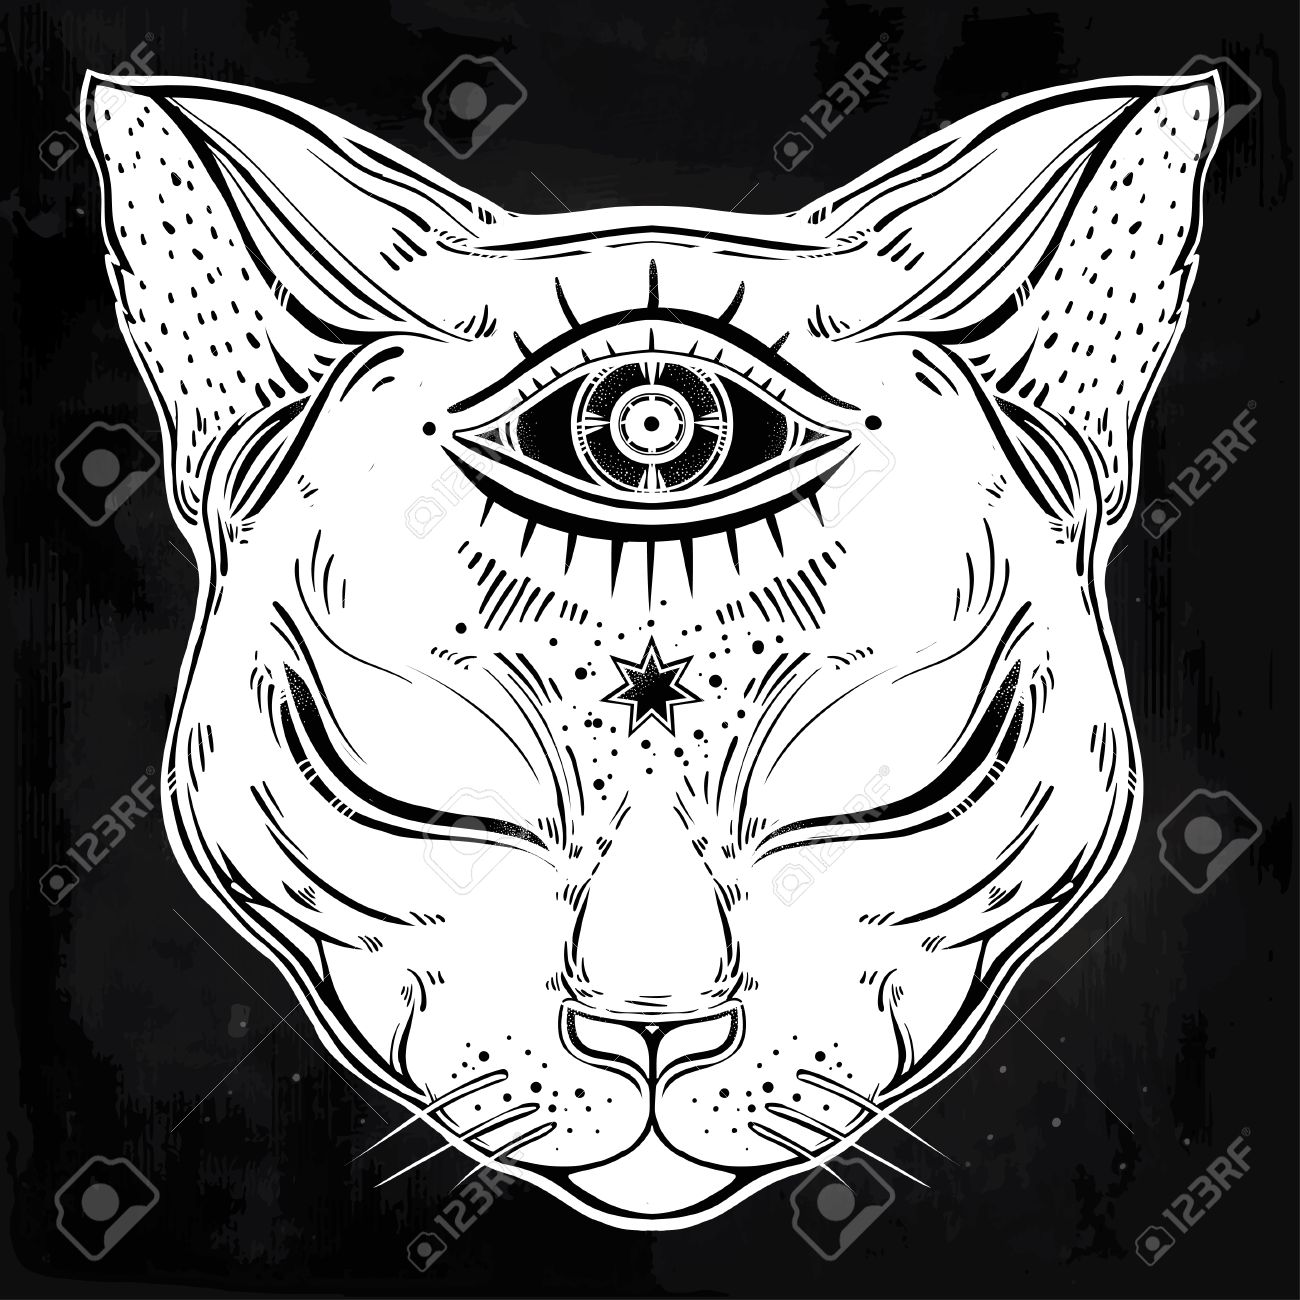 1300x1300 Black Cat Head Portrait With Moon And Three Eyes. Third Eye Is